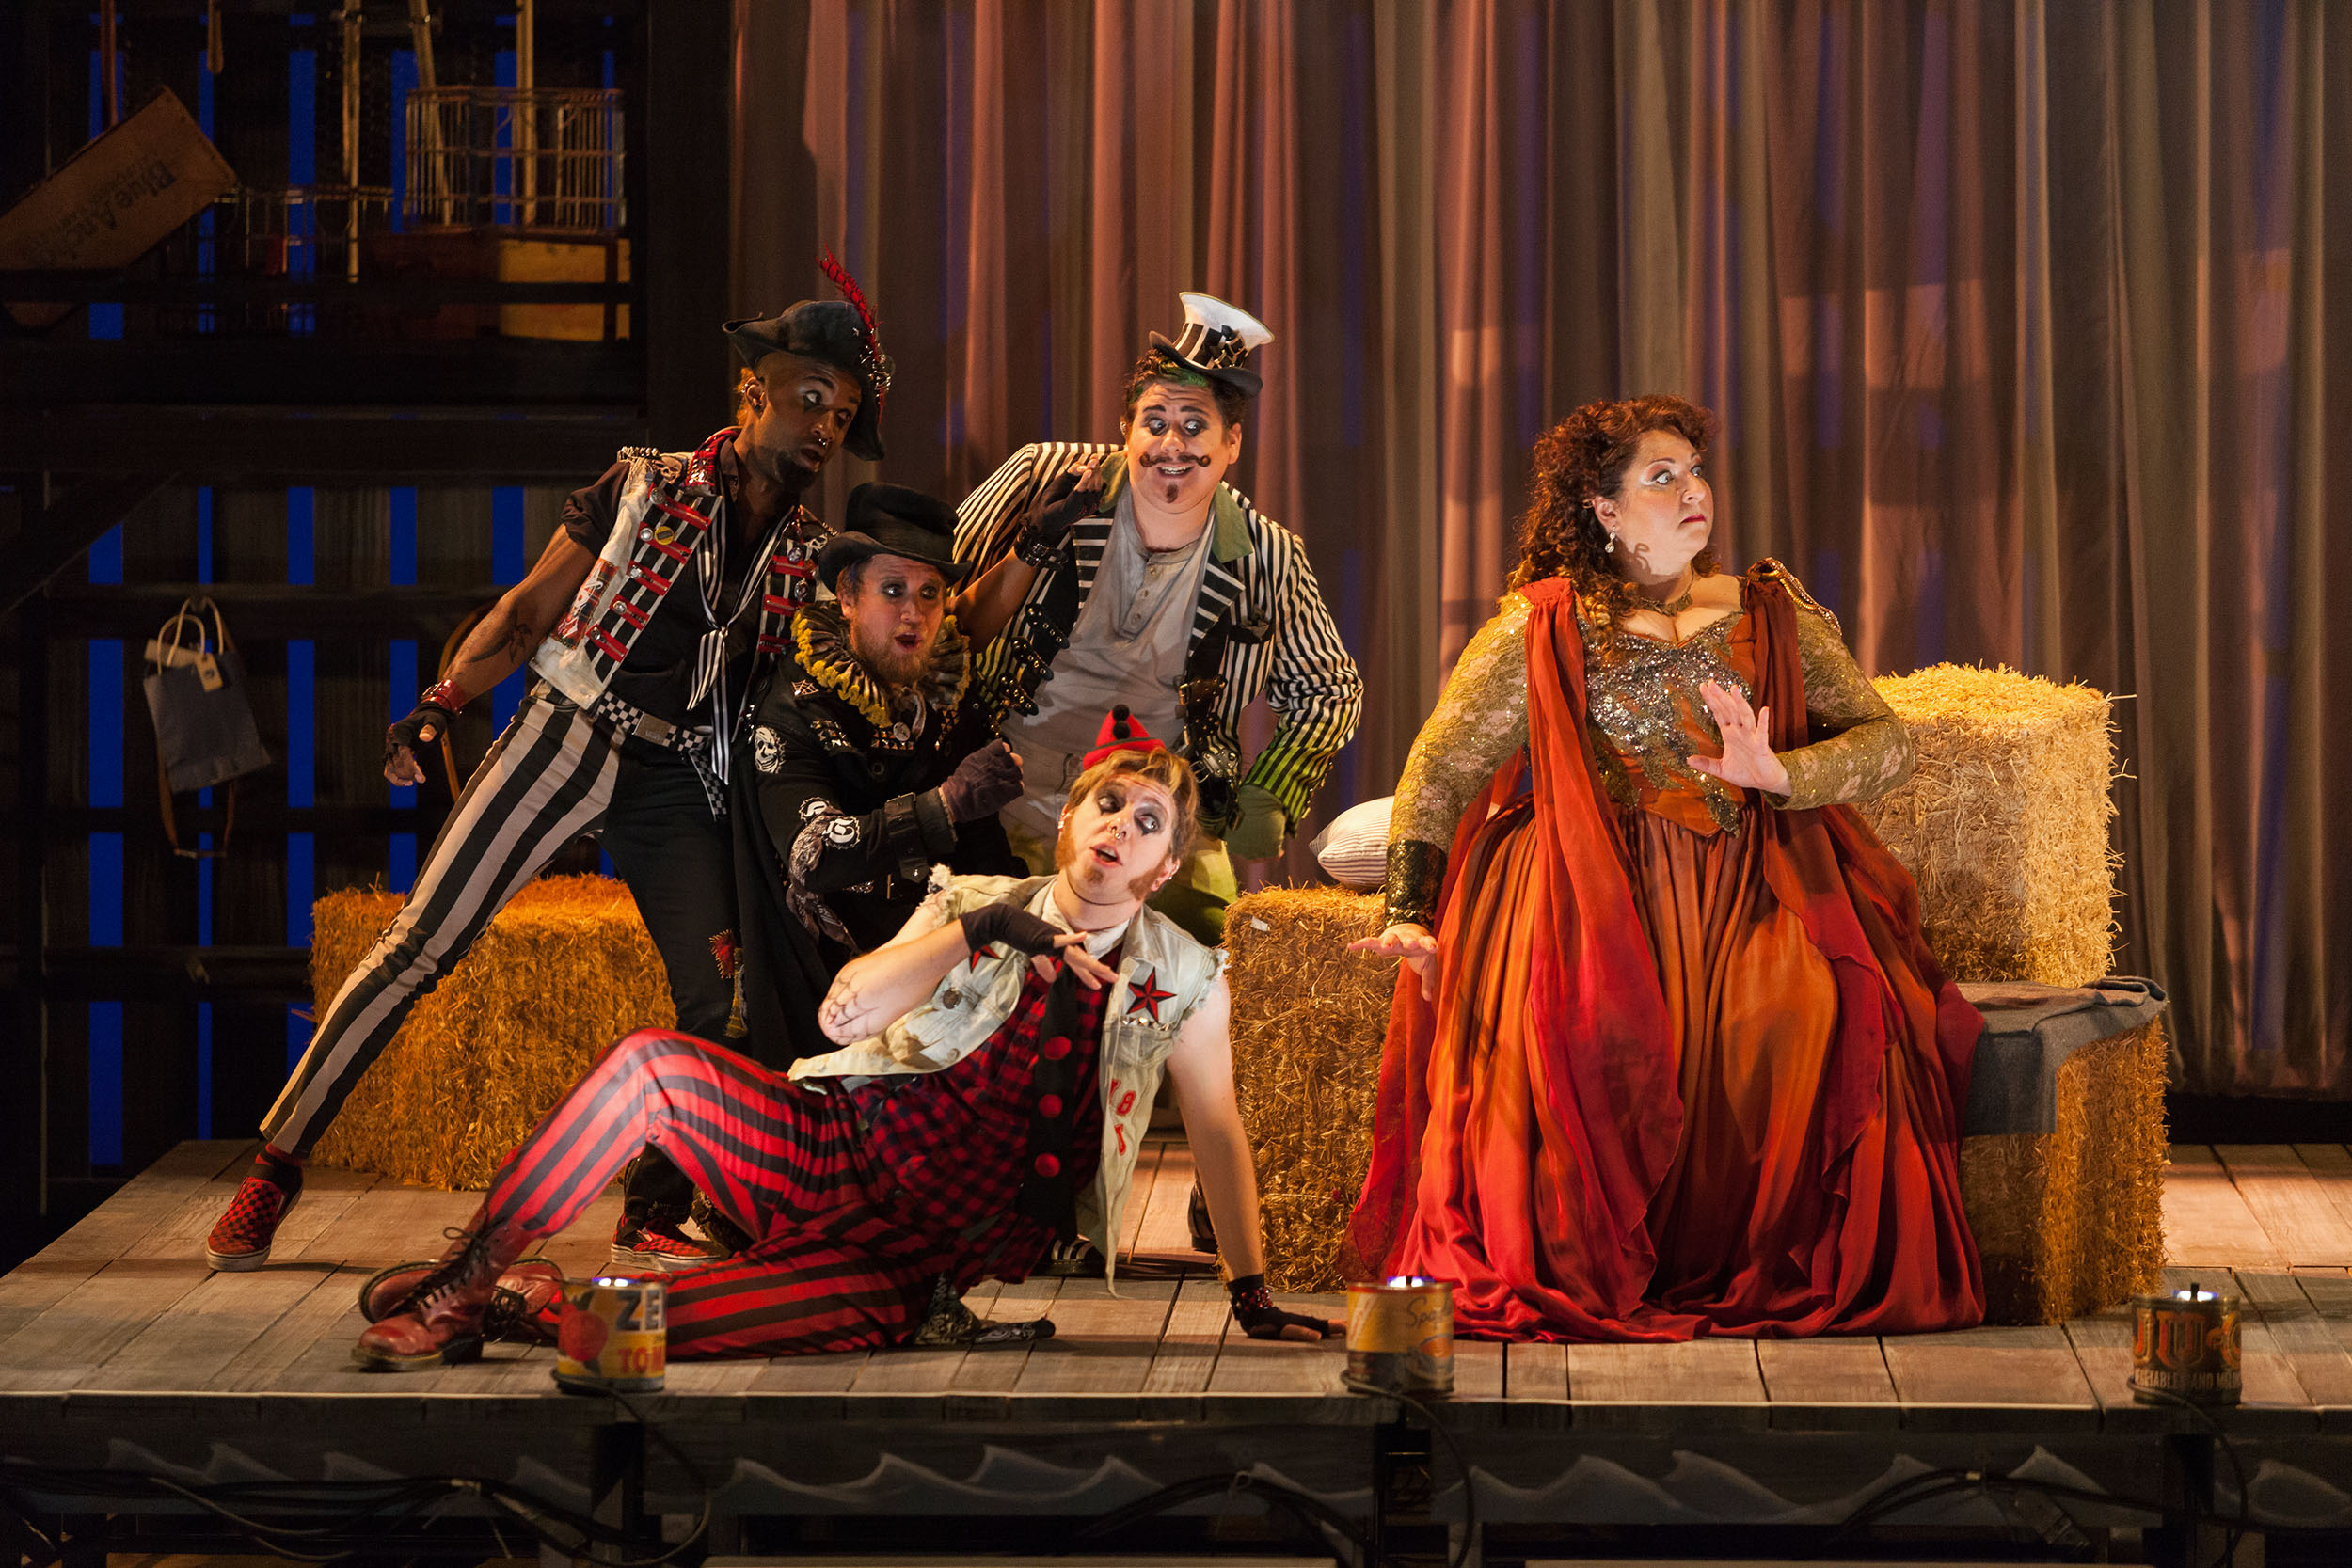 Clockwise from top: Brian Ross Yeakley as Brighella, Christine Goerke as Ariadne, Gerard Michael D'Emilio as Truffaldino, Andrew Penning as Scaramuccio and Carlton Ford as Harlequin in The Glimmerglass Festival's 2014 production of Strauss'  Ariadne in Naxos .